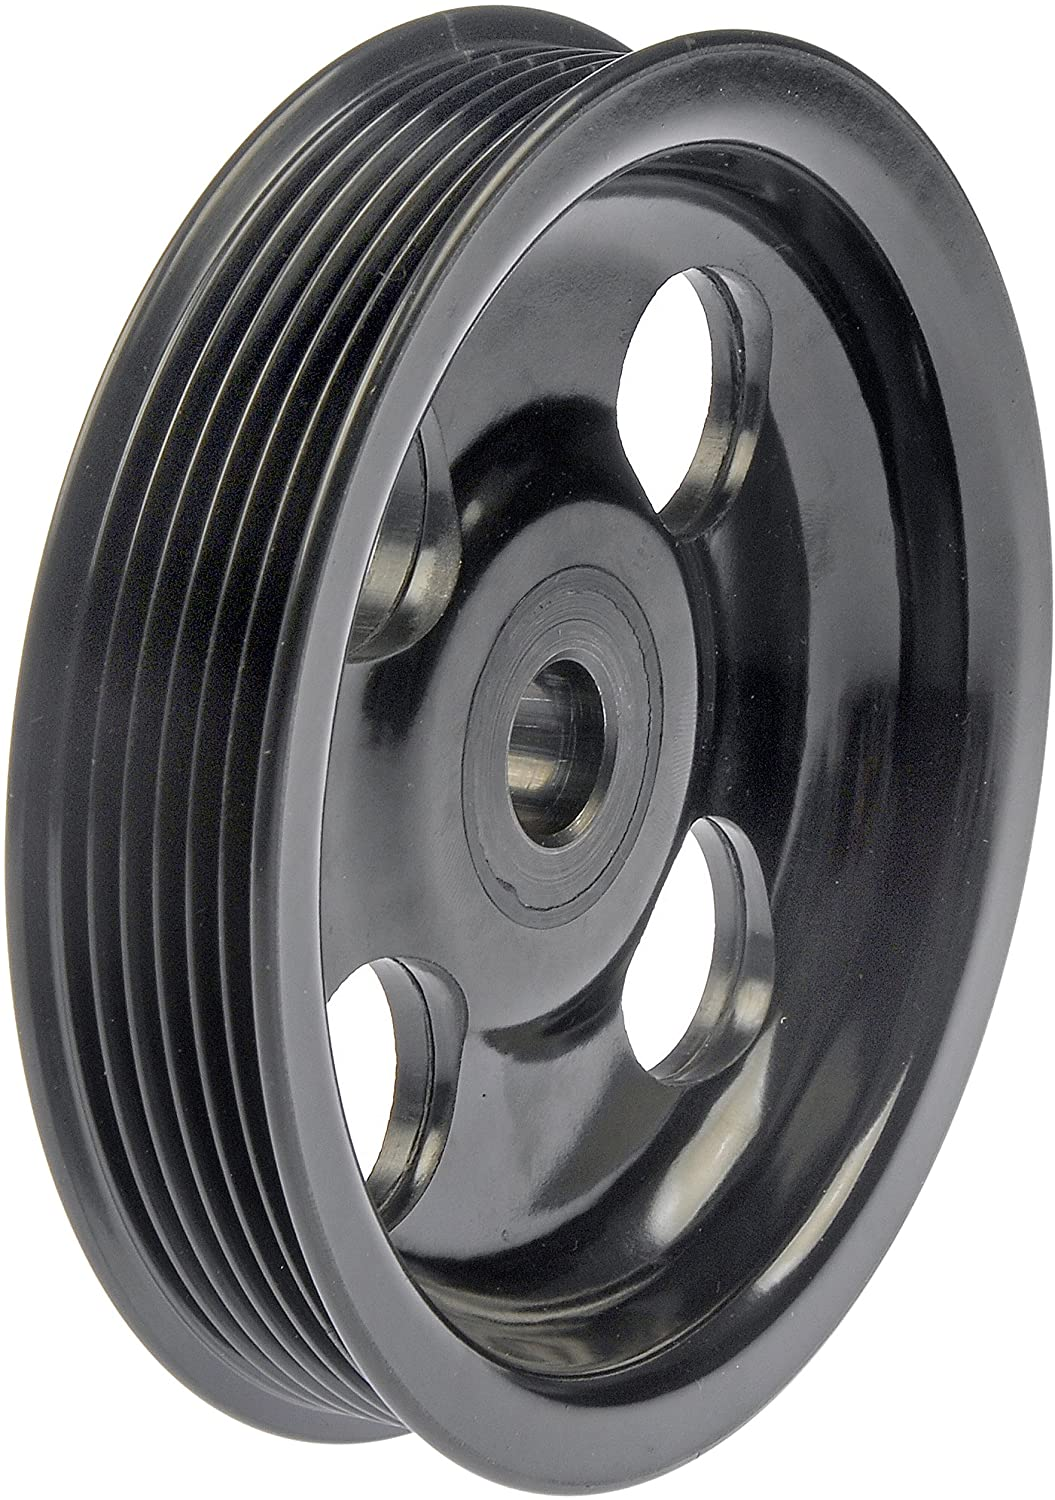 Dorman 300-313-MX Power Steering Pump Pulley for Select Dodge Models